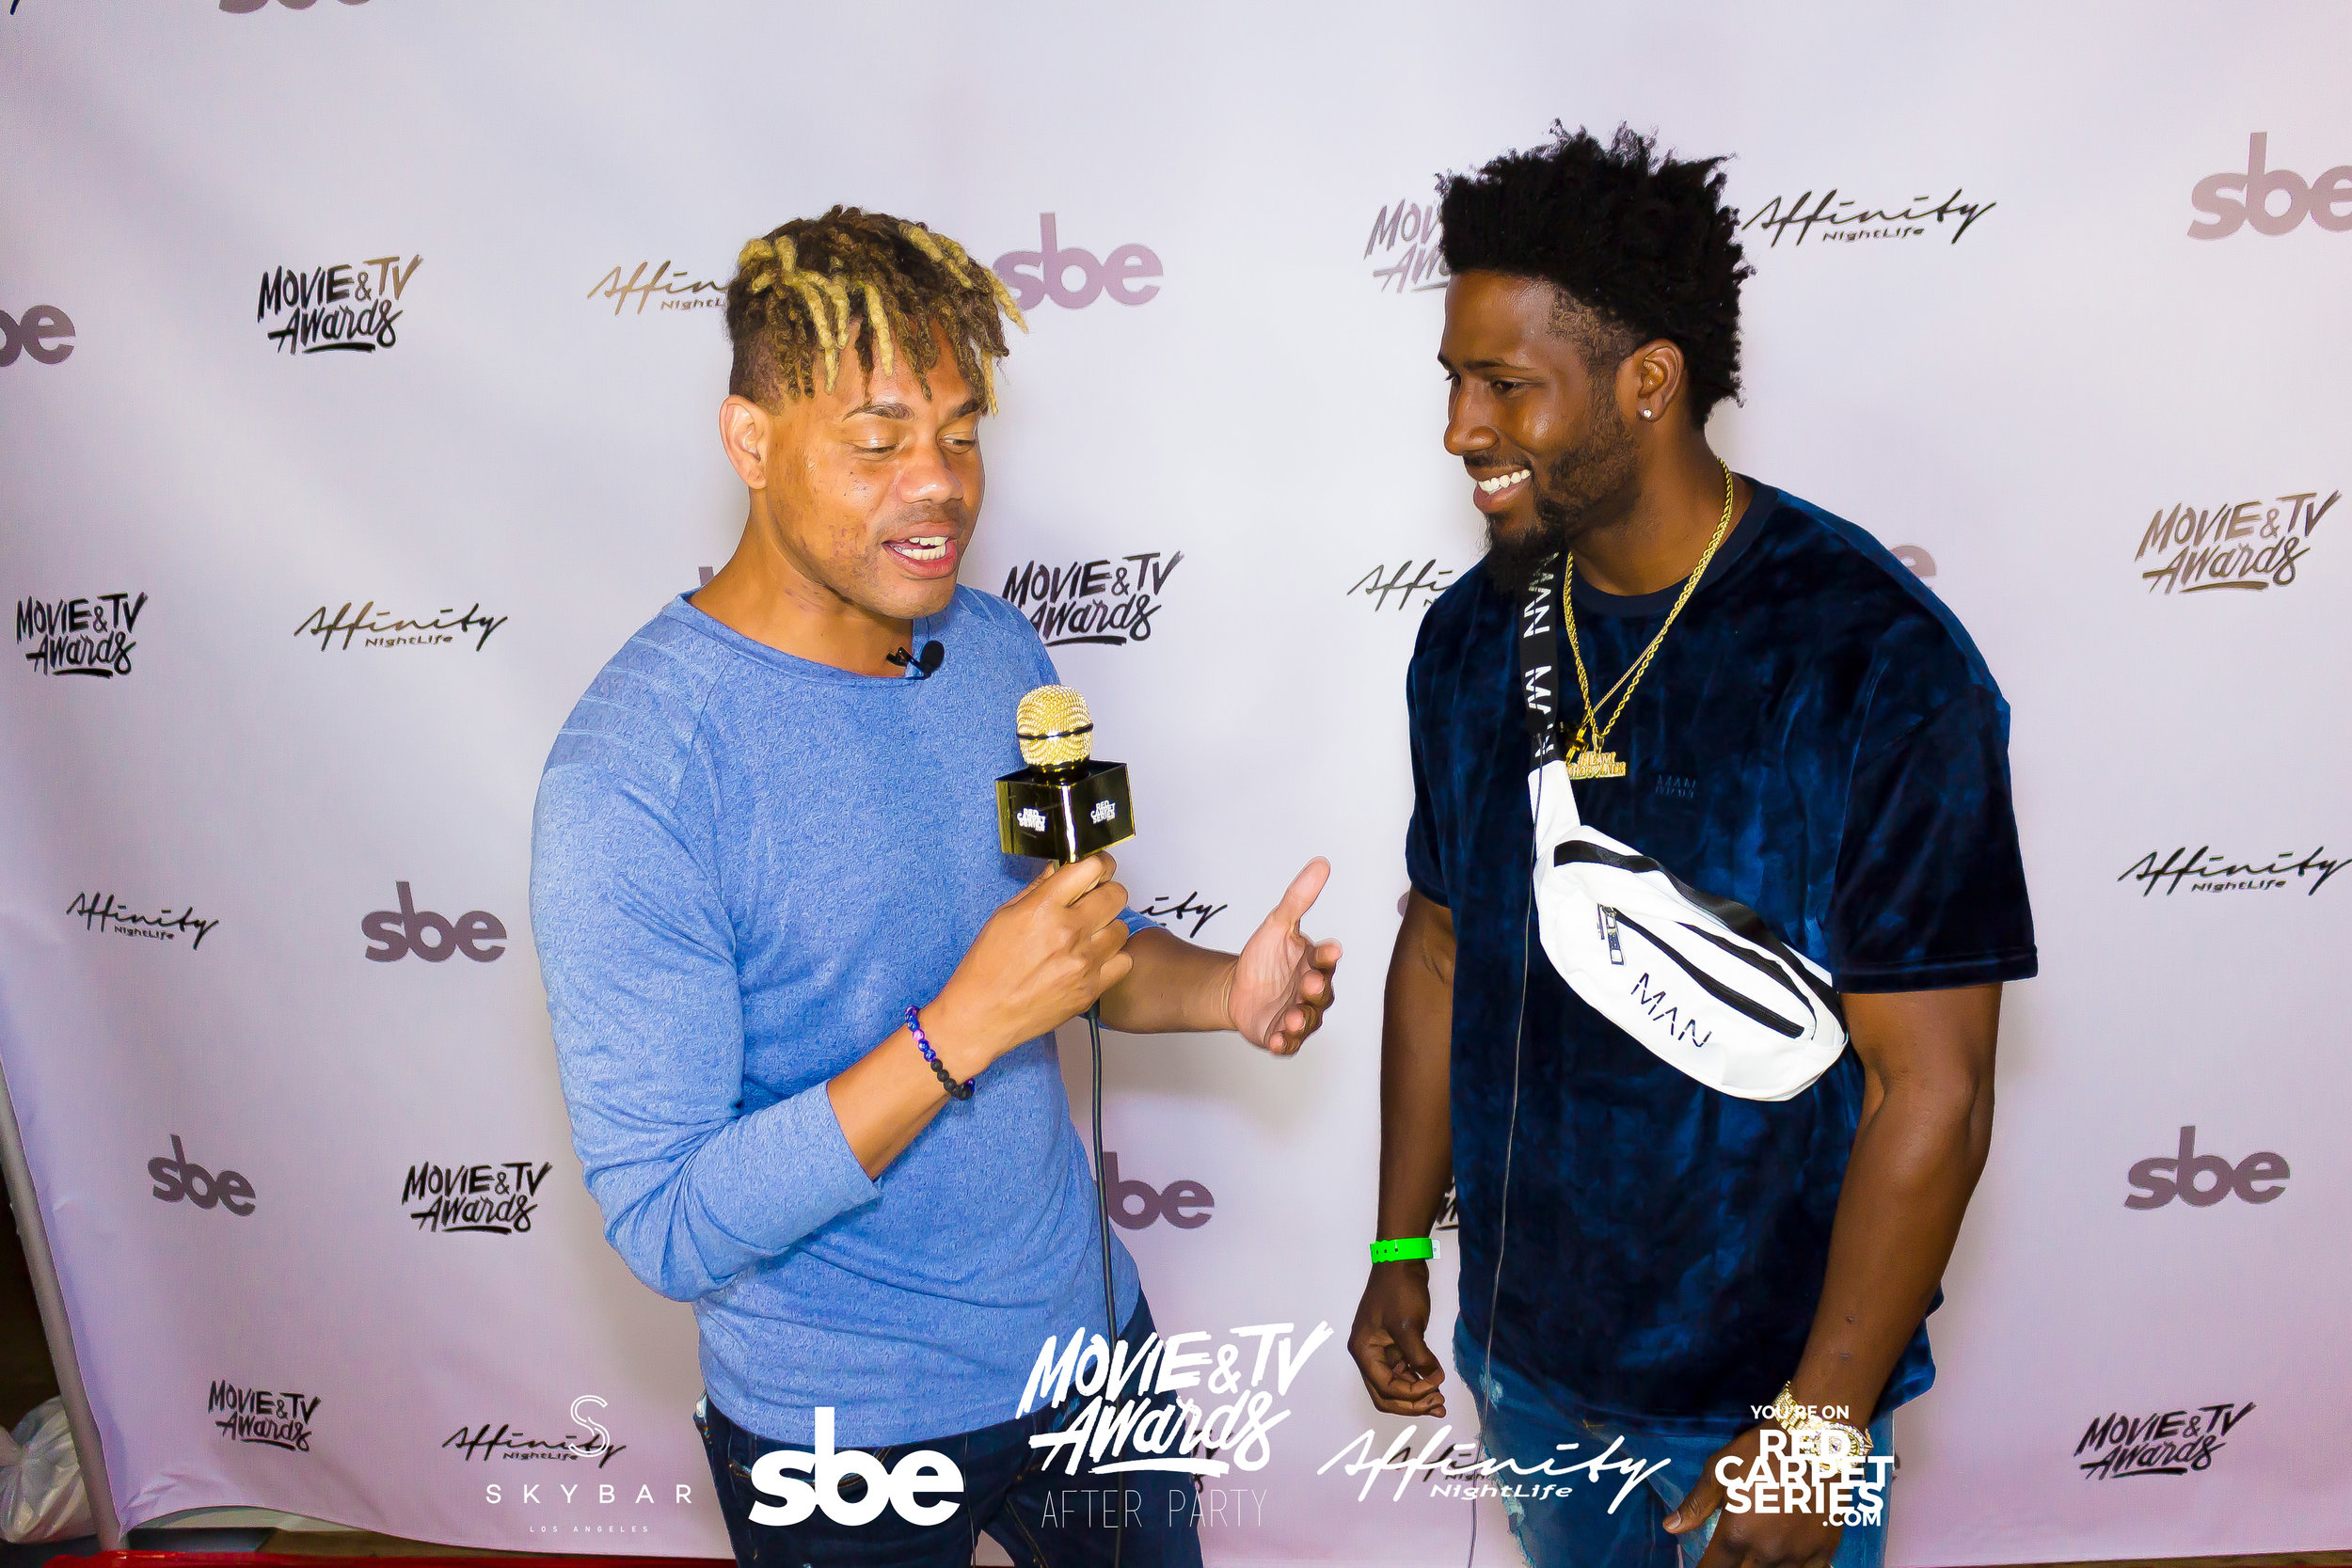 Affinity Nightlife MTV Movie & TV Awards After Party - Skybar at Mondrian - 06-15-19 - Vol. 1_32.jpg